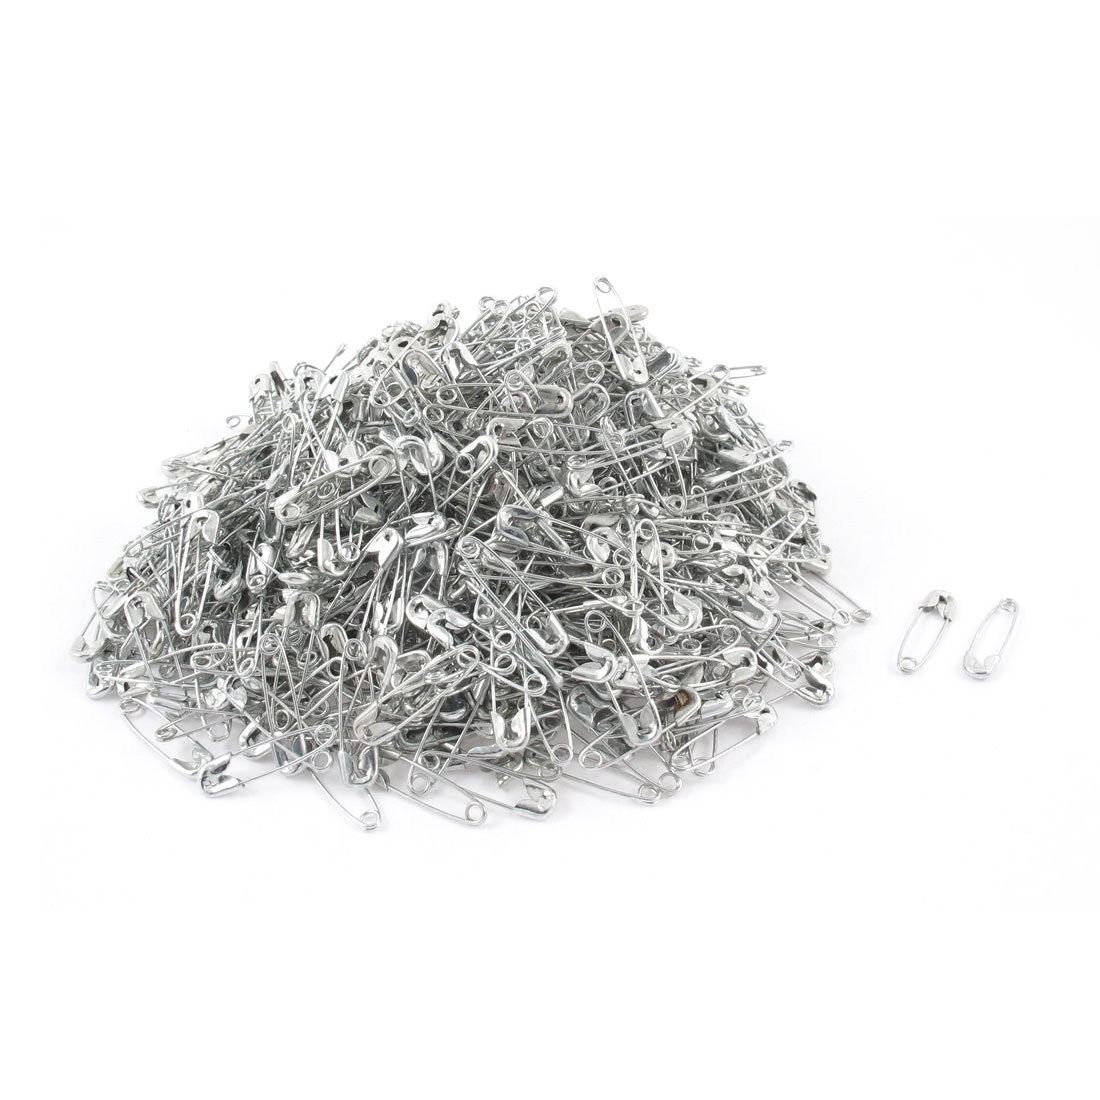 Boutique Metal Costume Sewing Dressmaking Craft Tiny Mini Safety Pins 1000pcs Silver Tone